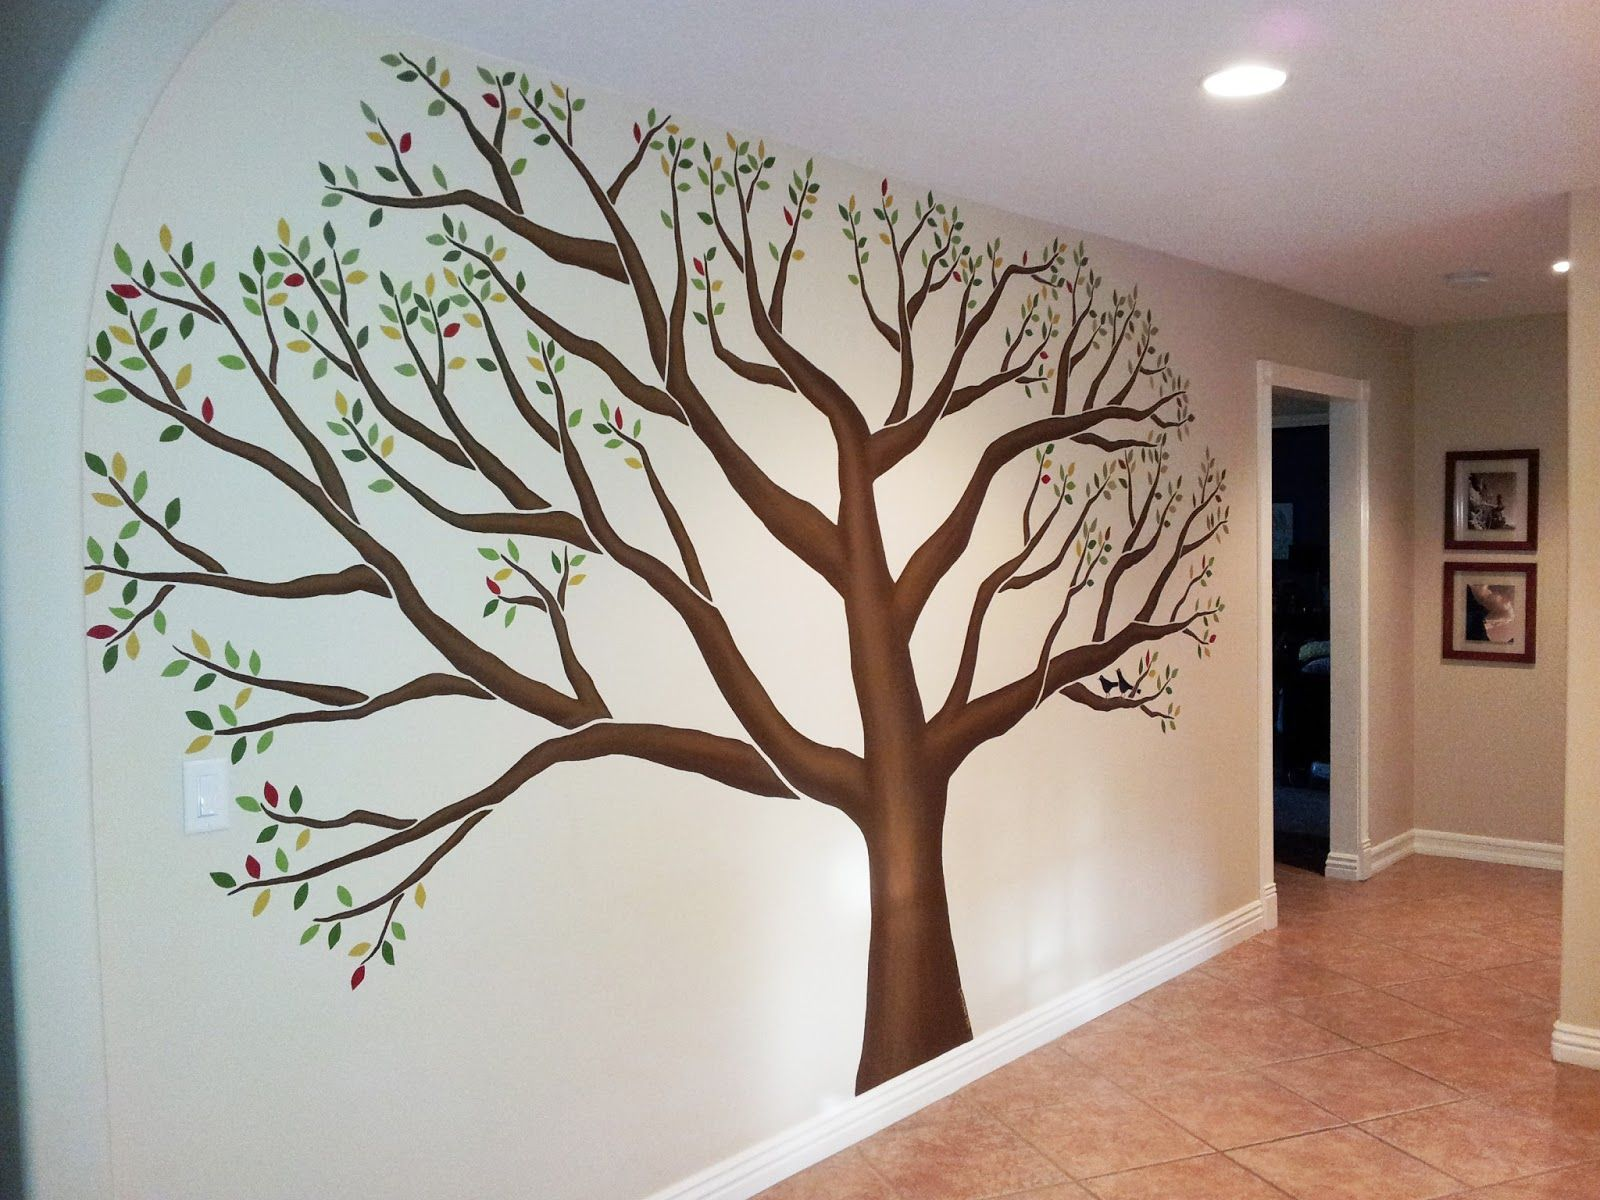 Bedroom Wall Art Trees 39family Tree 39 Painted This Week In Mudroom Of Client 39s